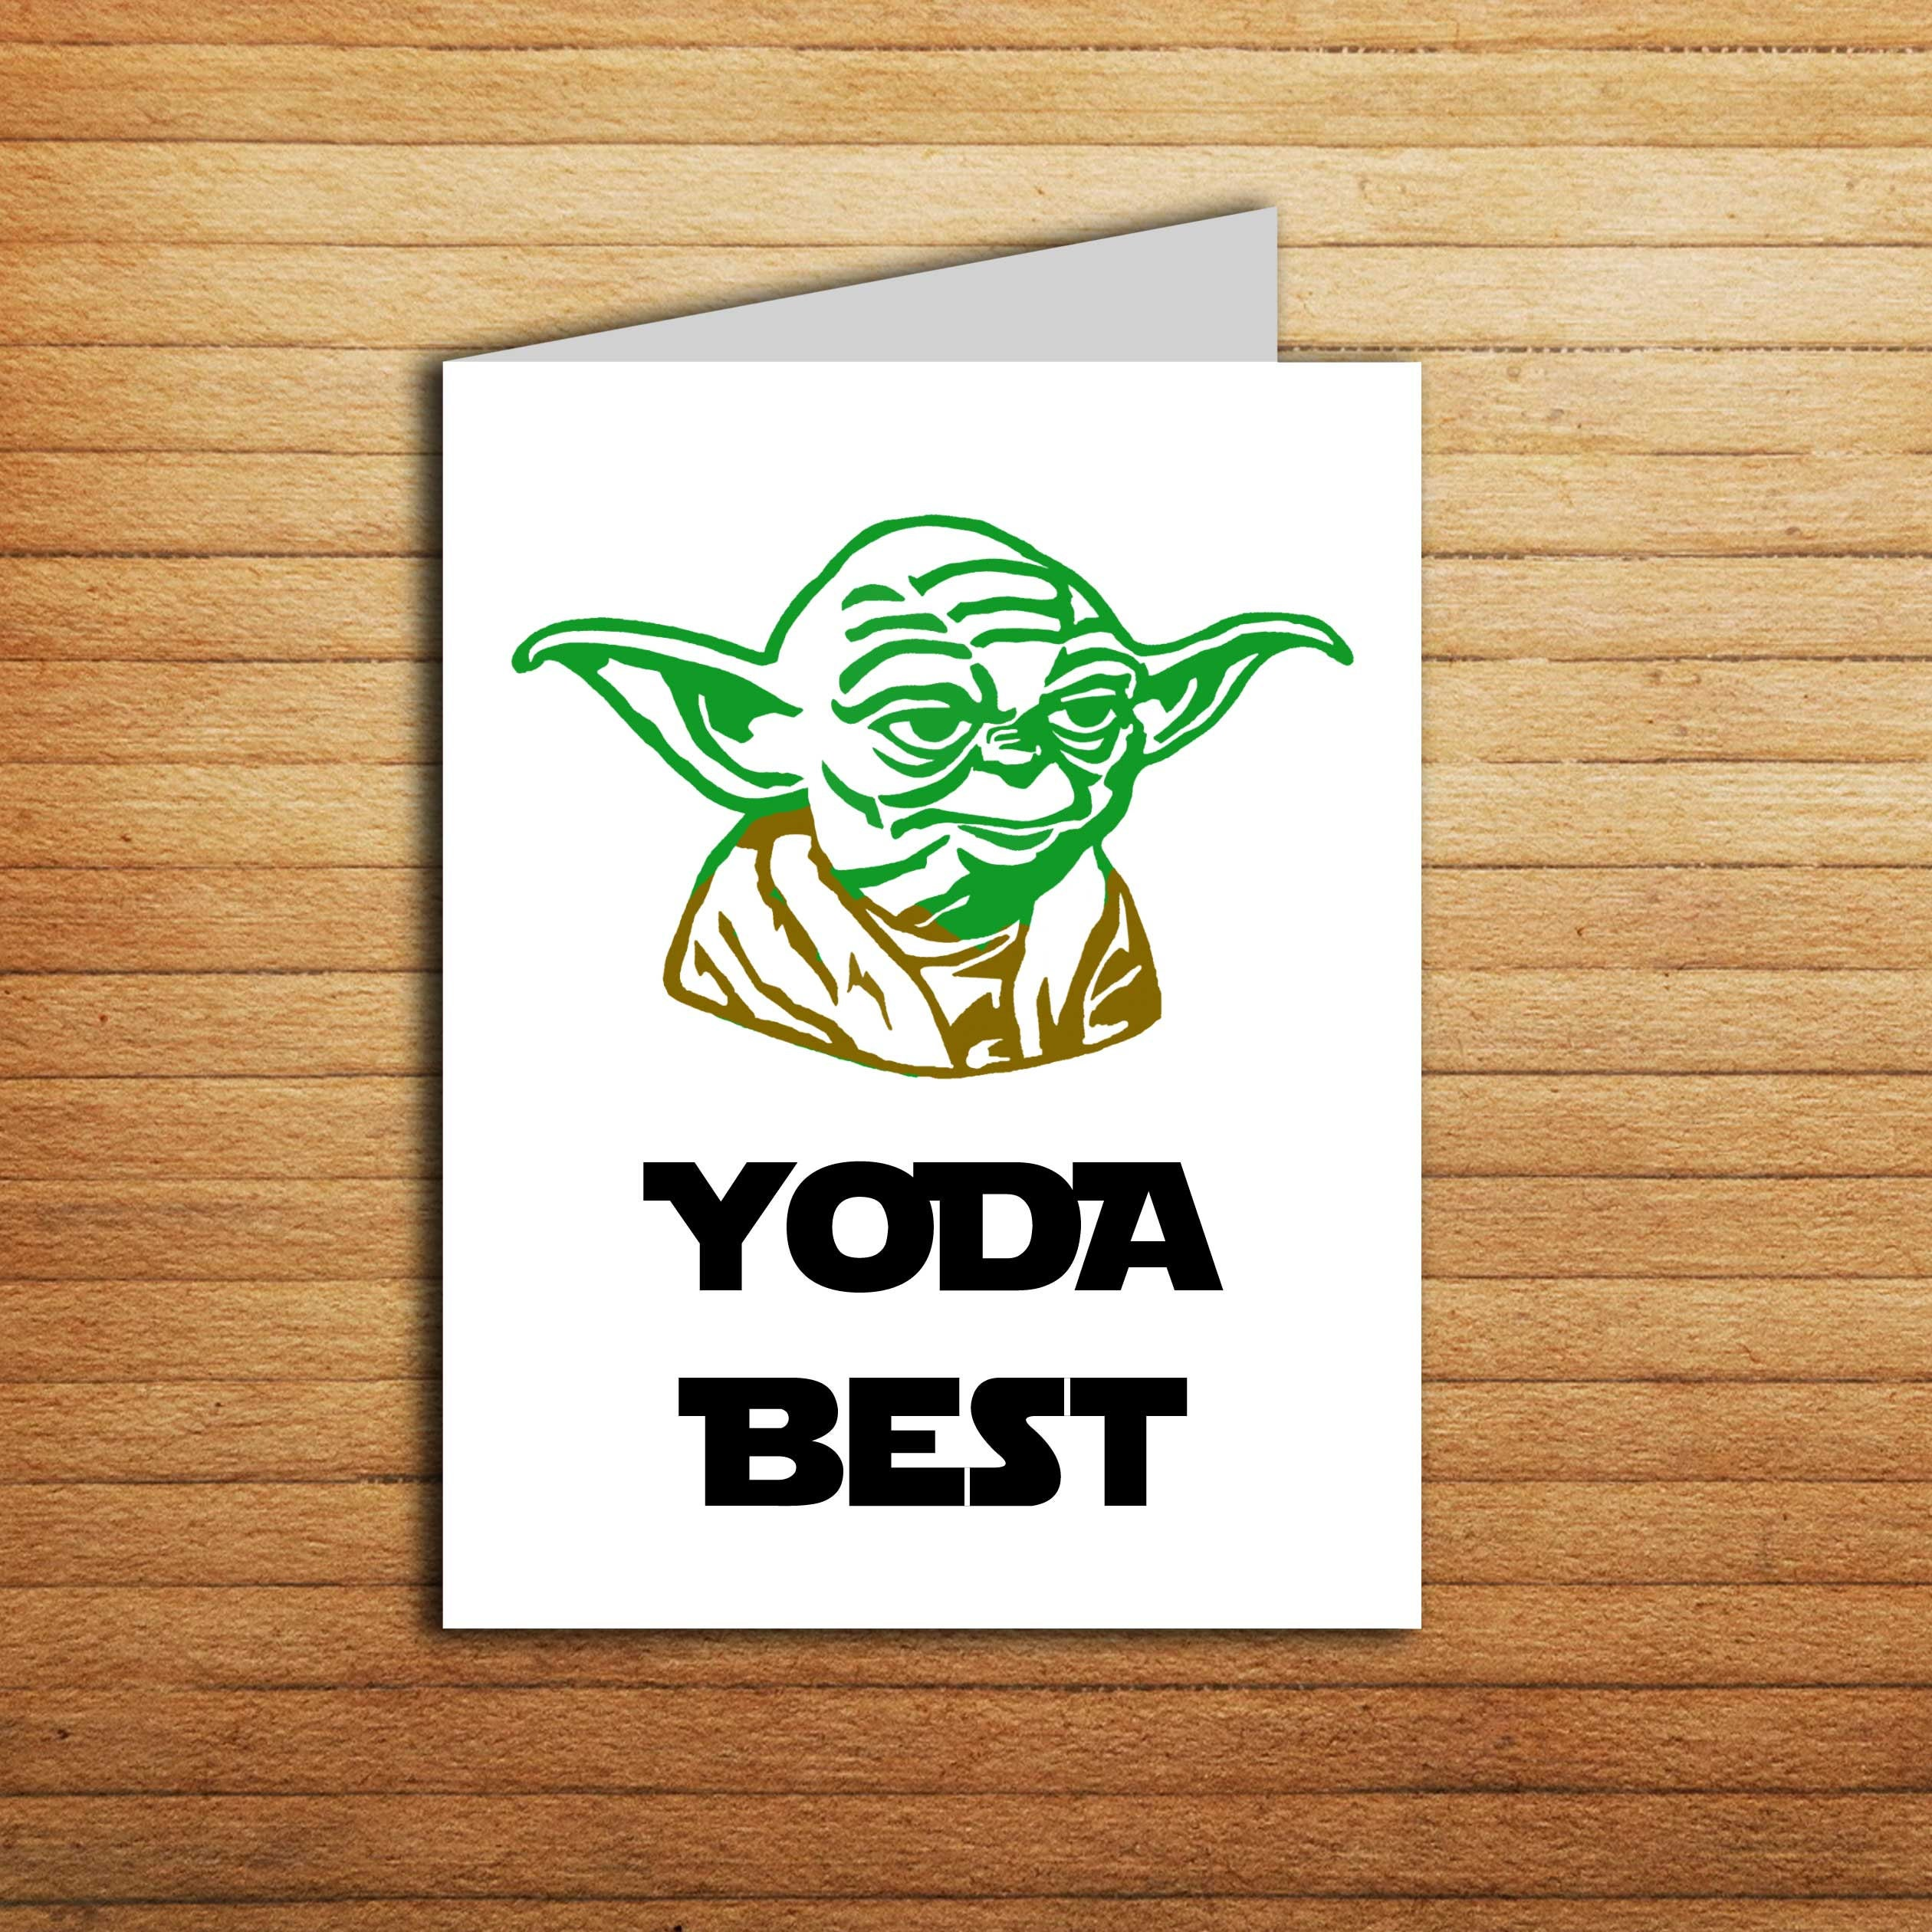 Star Wars Yoda Best Card Funny Thank You Card Birthday Card. Top 3 Credit Report Companies. Chapter 11 Bankruptcy Protection. Nashville Carpet Stores Ipsos Market Research. About Electrical Engineering. Programming Classes For Beginners. Burbank Criminal Defense Attorney. Pre Engineering Courses Car Insurance Glendale. Protecting Identity Online Plumber Seattle Wa